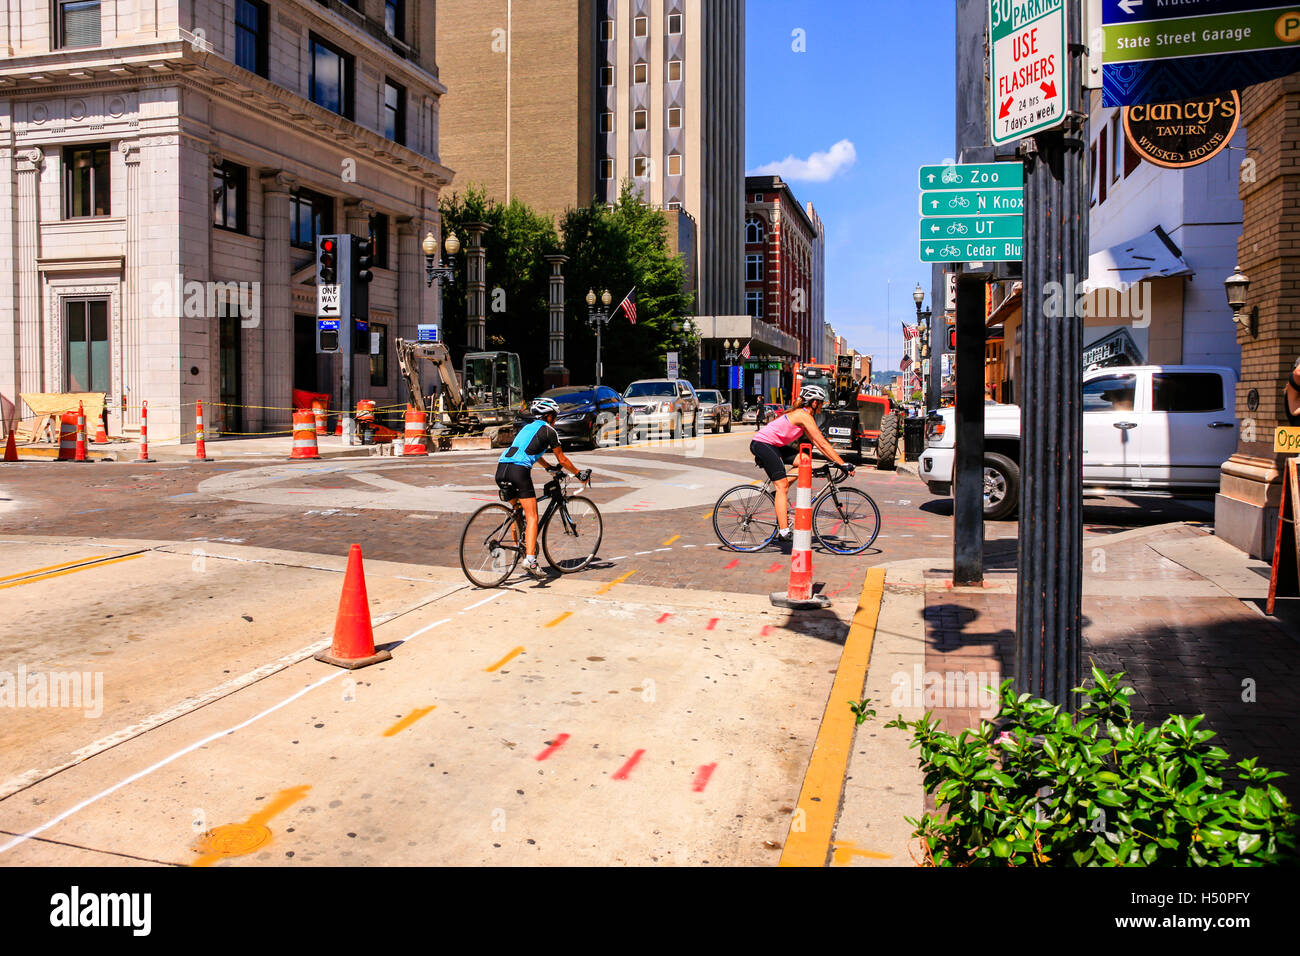 South Gay Street, the Theater district of Knoxville, TN - Stock Image